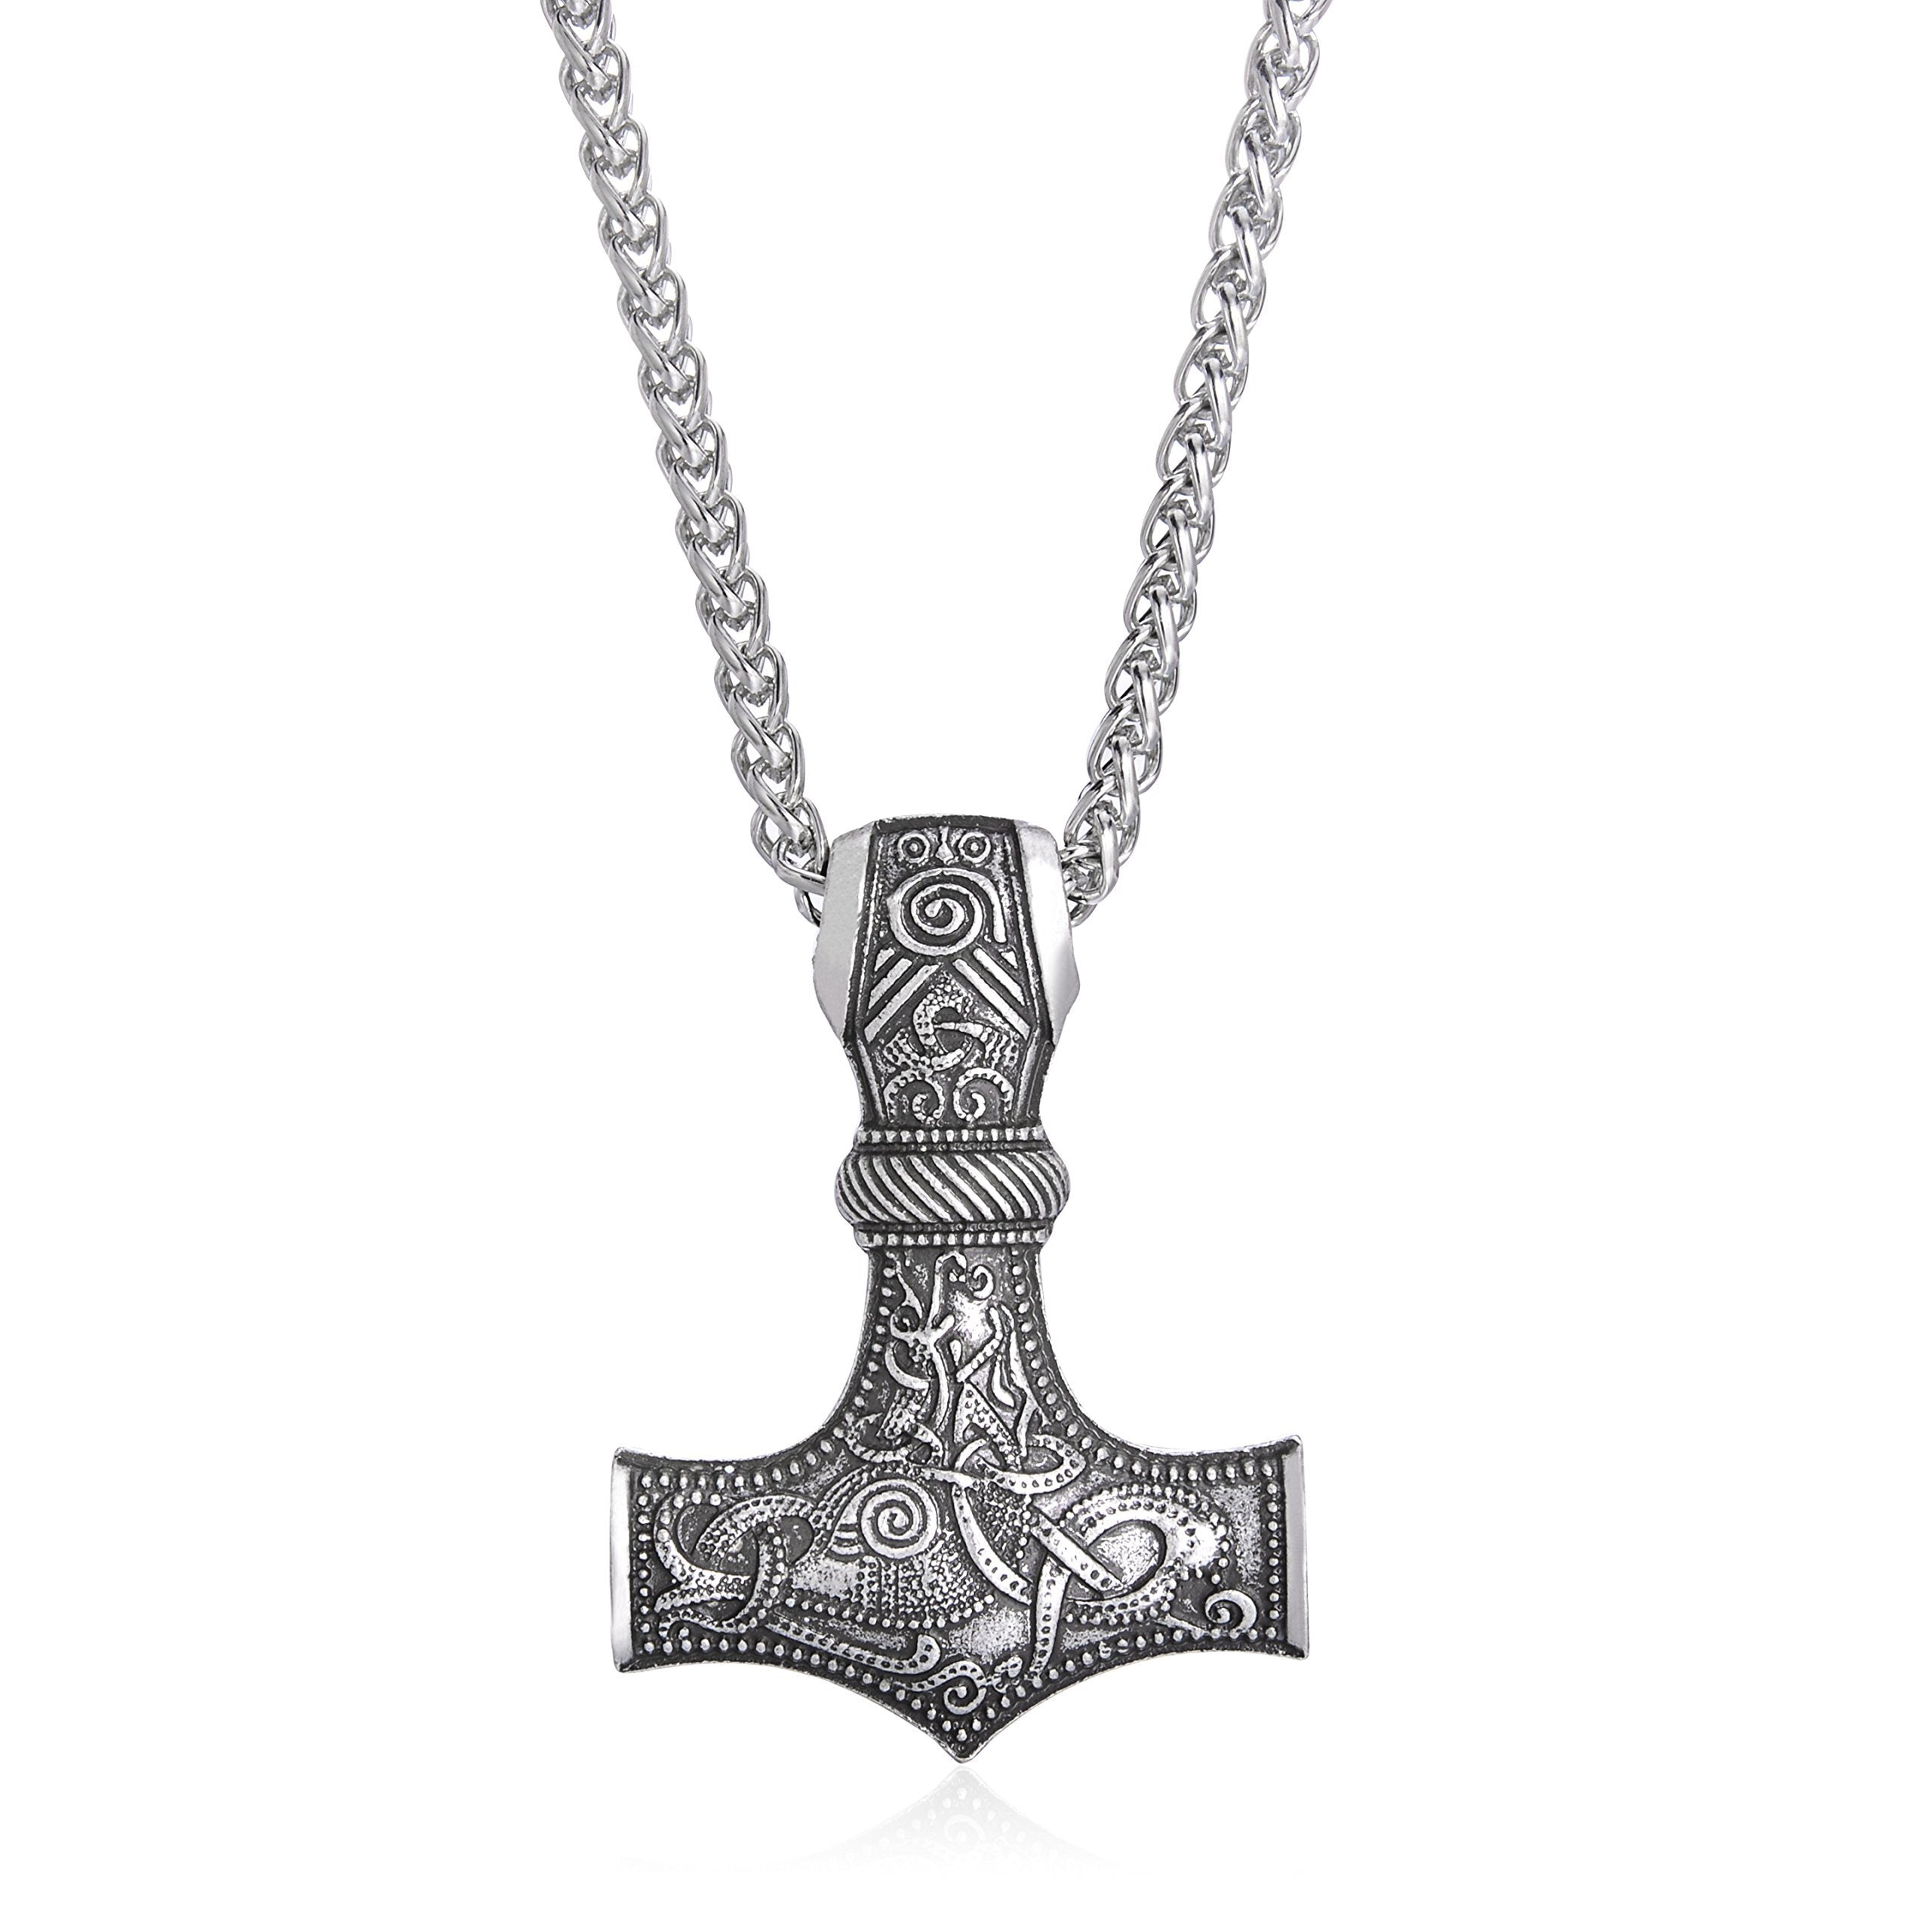 LANGHONG Nordic Viking Thor's Hammer with God's Horn Necklace Jewelry Talisman Mjolnir Necklace (Antique Silver) - SonsofOdin Co Goth Viking Biker Jewellry